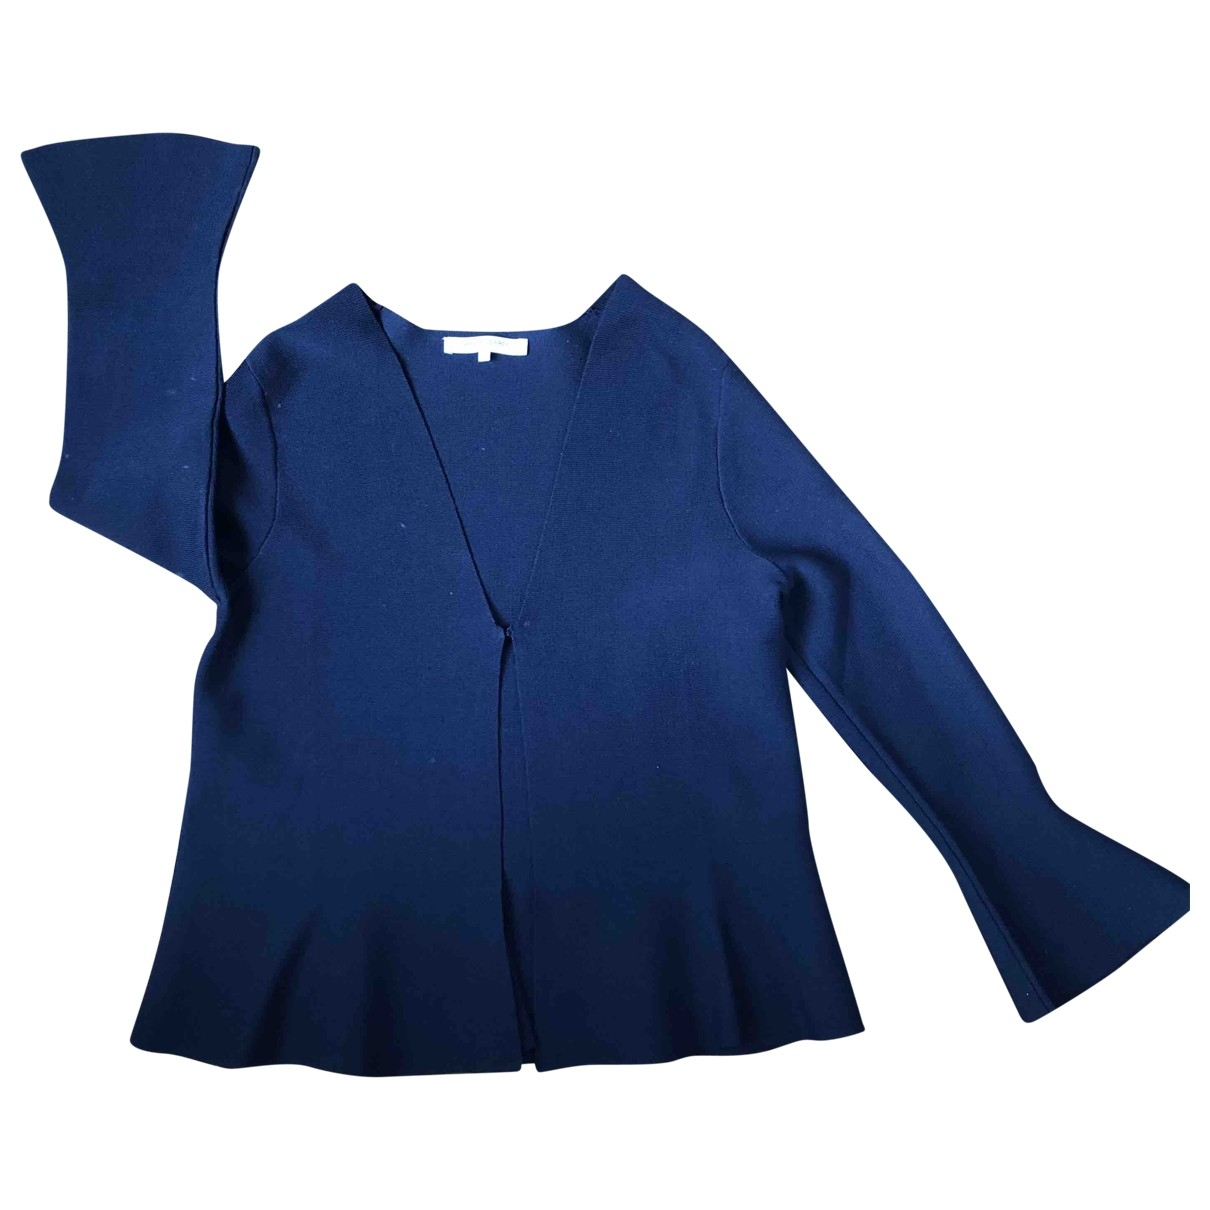 Gerard Darel \N Navy Knitwear for Women 1 0-5